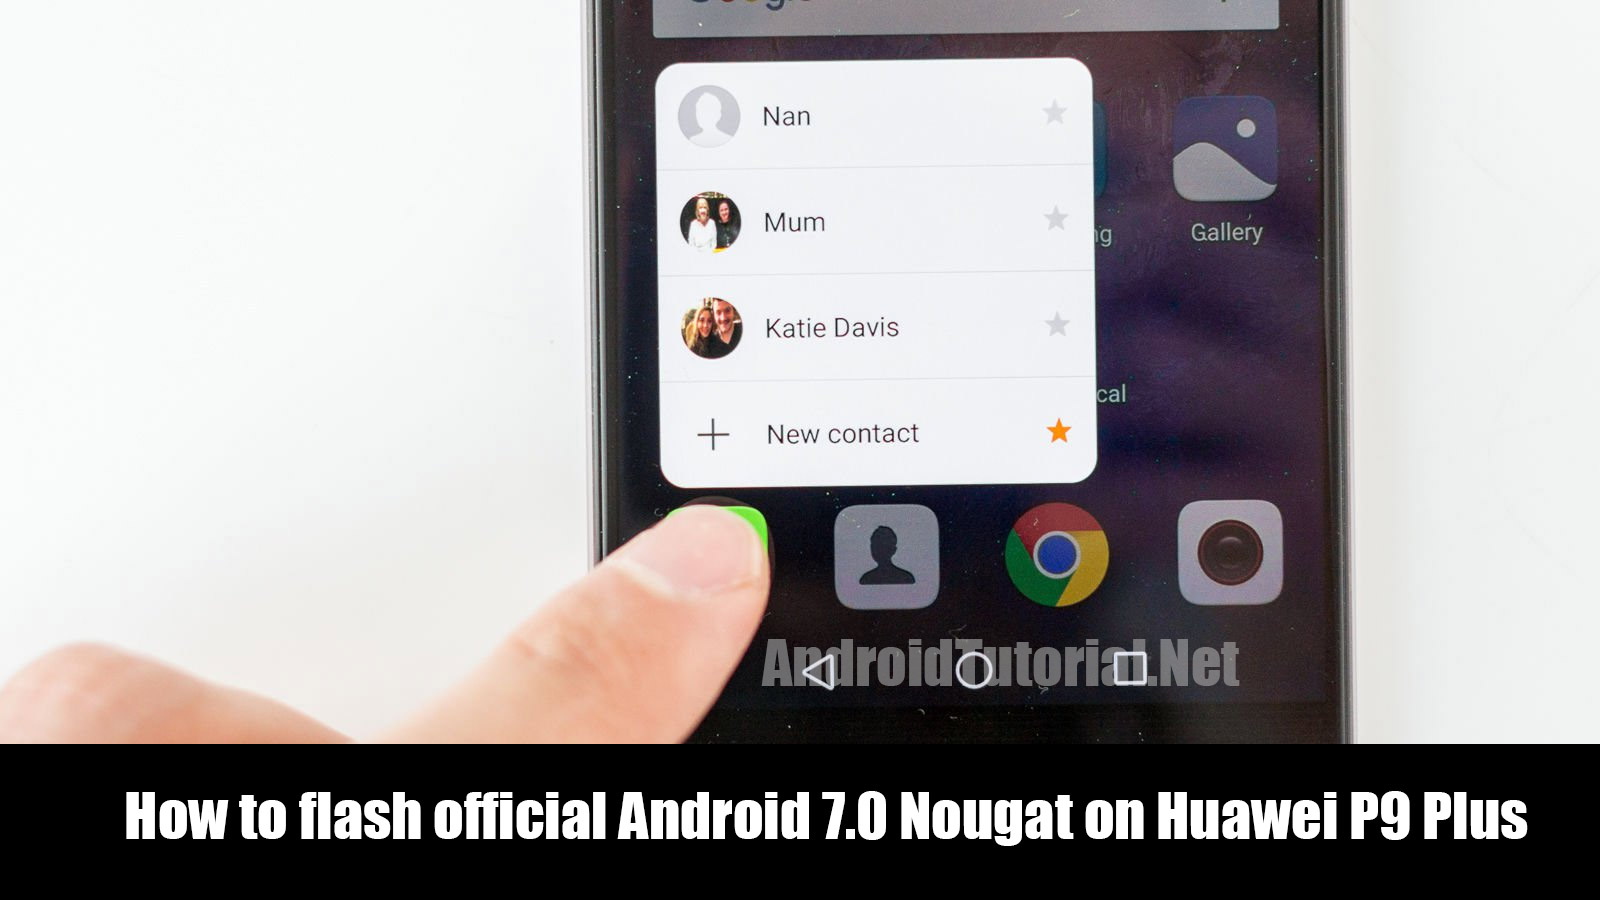 flash official Android 7.0 Nougat on Huawei P9 Plus